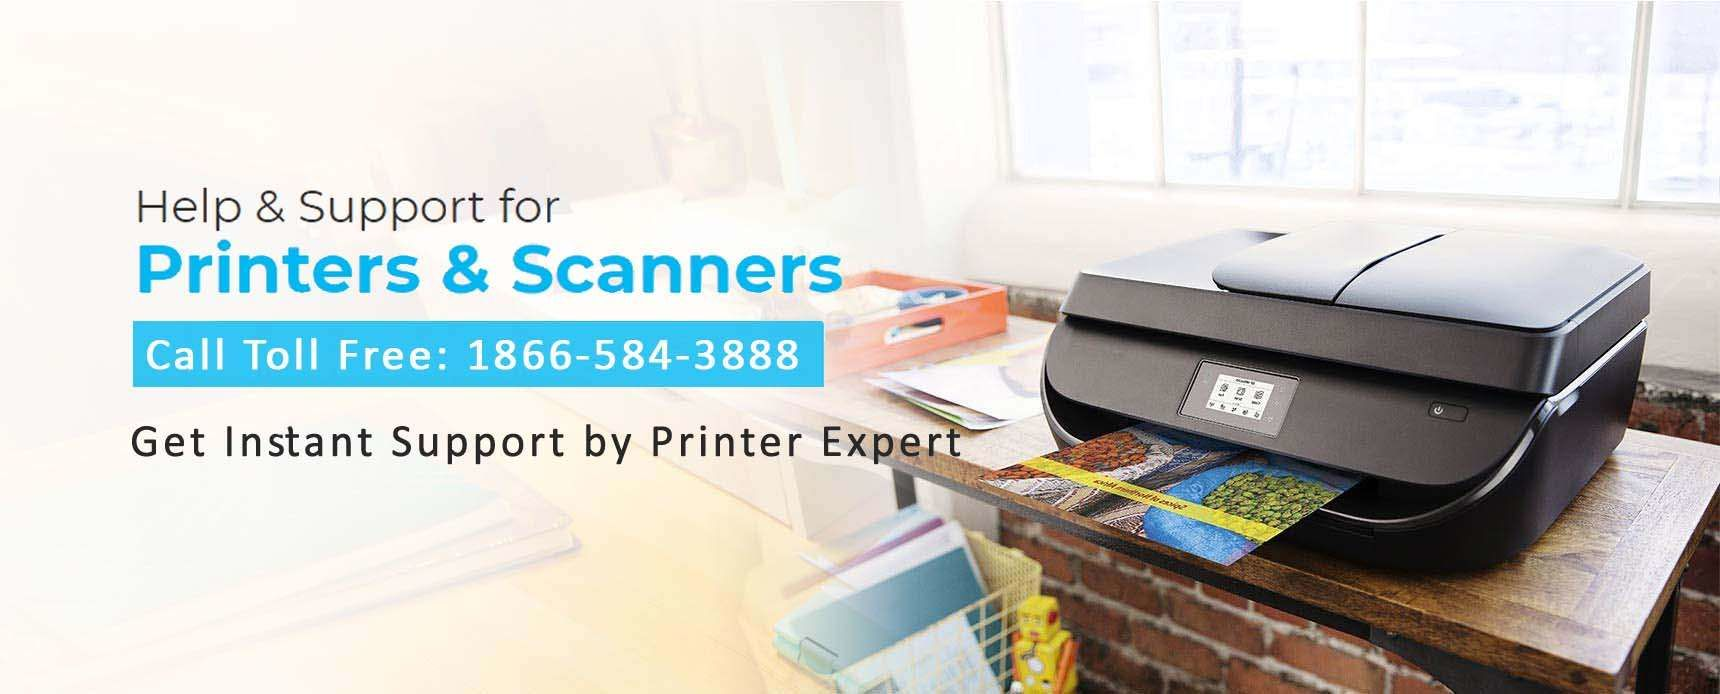 Hp Officejet Printer Support In USA | HP Printer Support Number